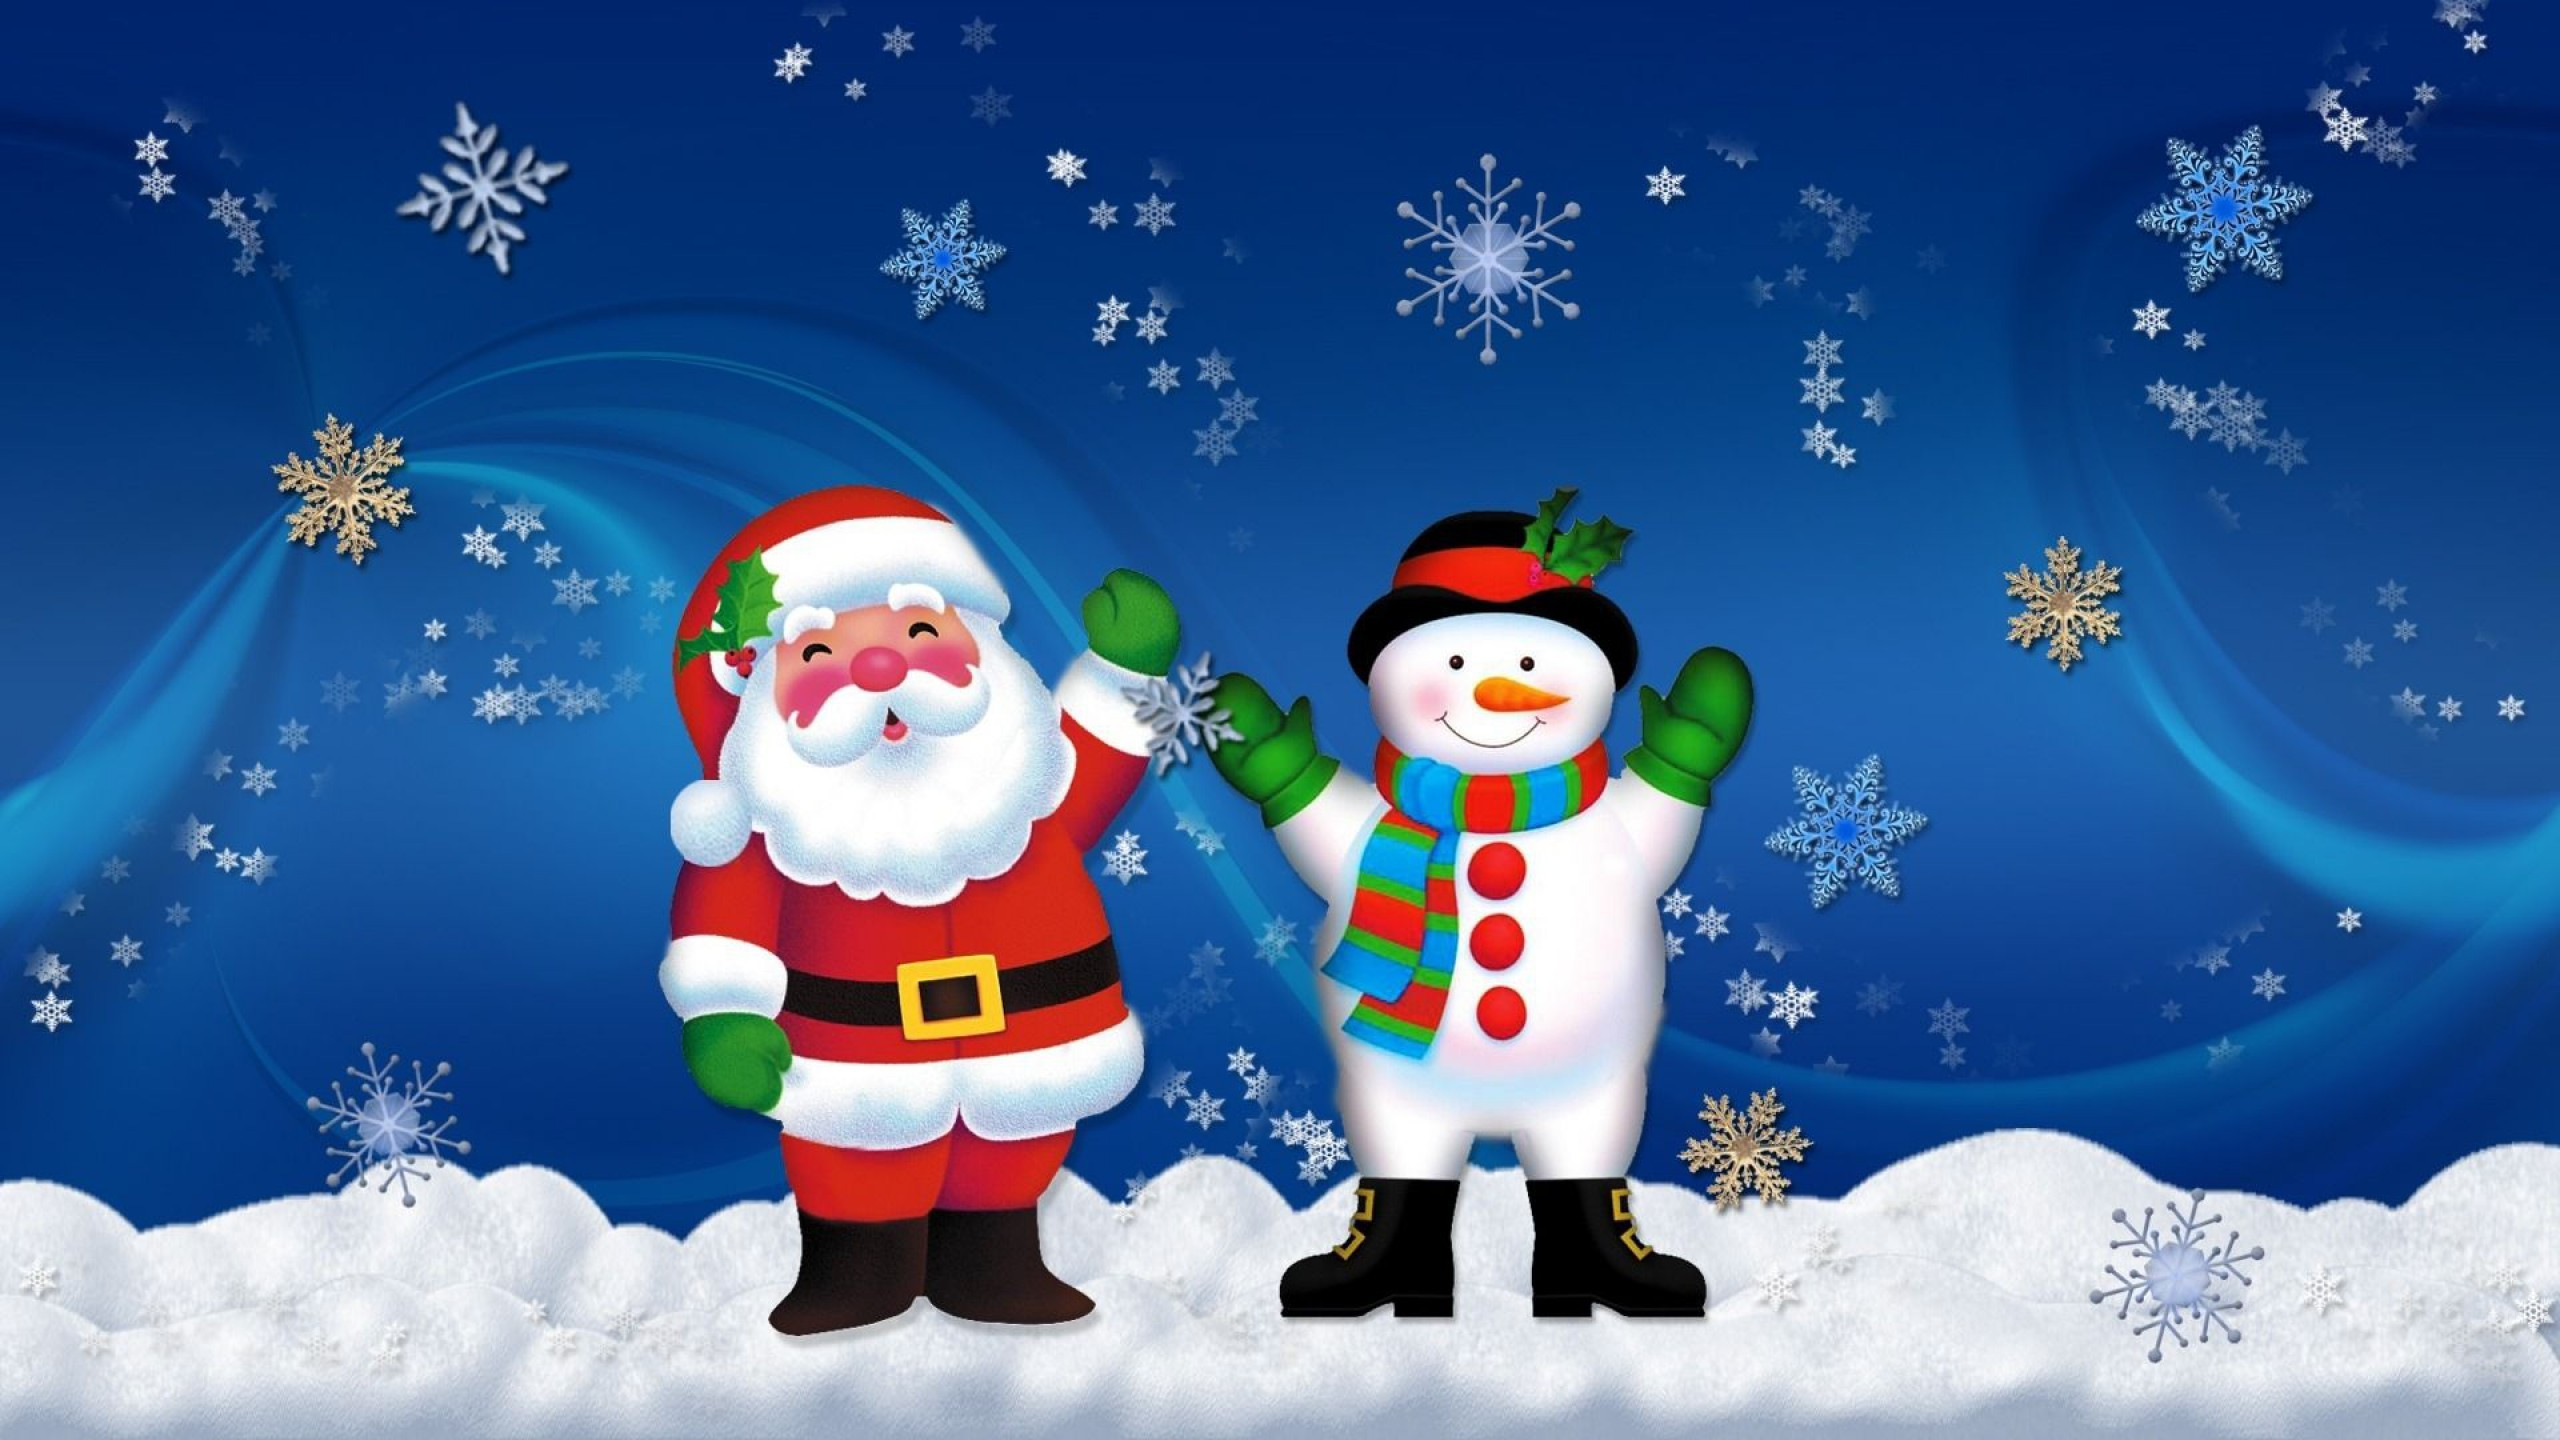 2560x1440 Merry Christmas Santa Claus And Snowman Old Friends Hd Wallpapers   : Wallpapers13.com